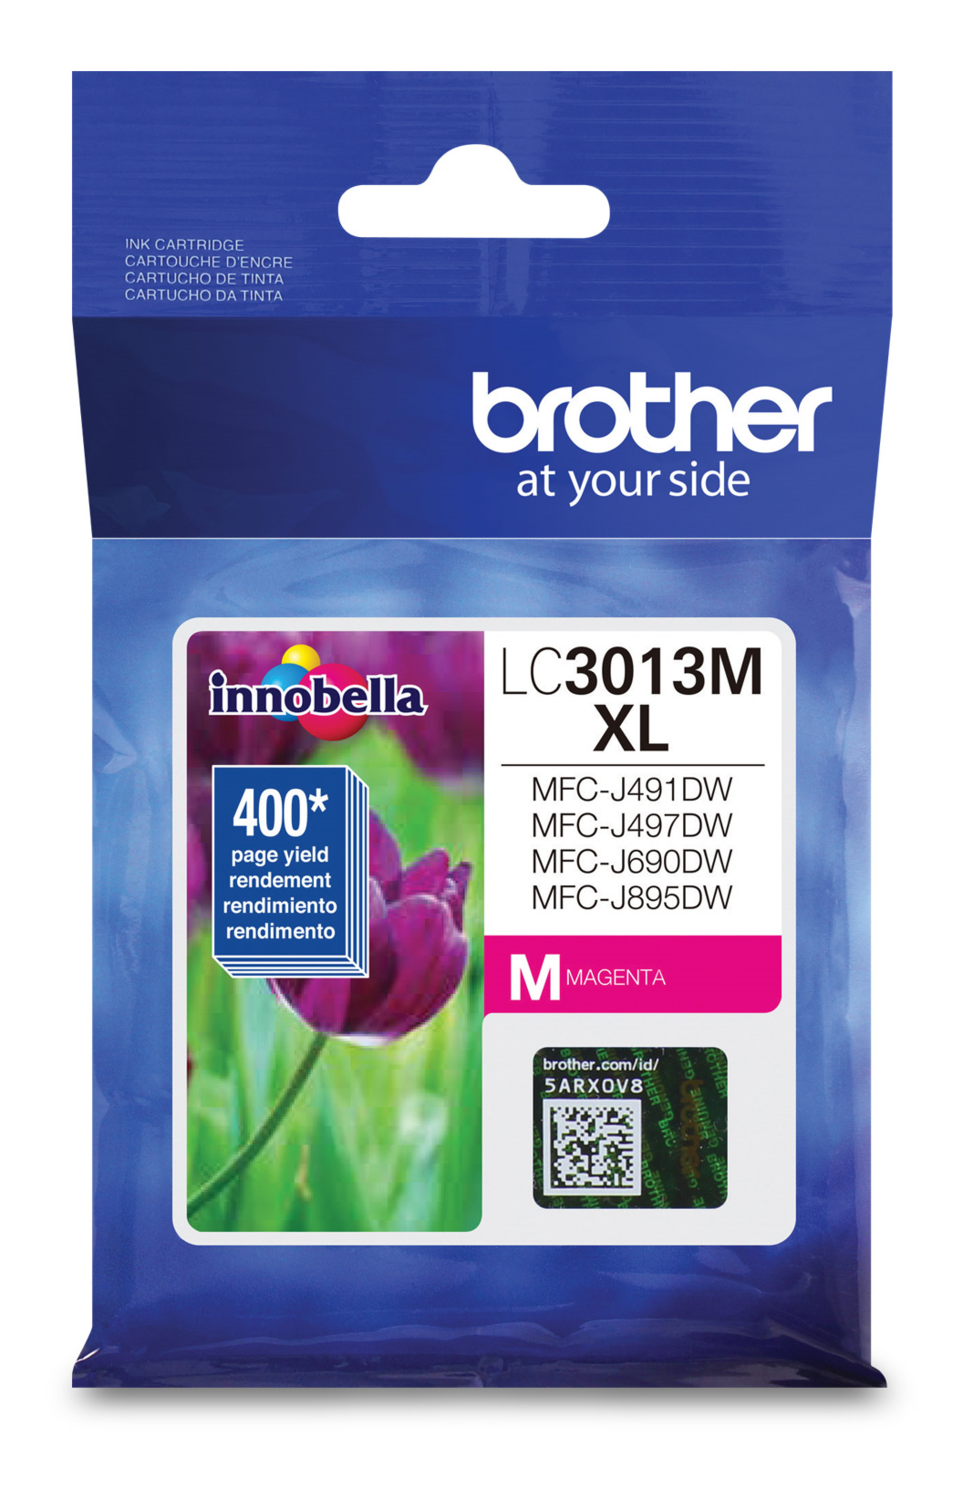 Brother Ink Lc3013M Xl Magenta